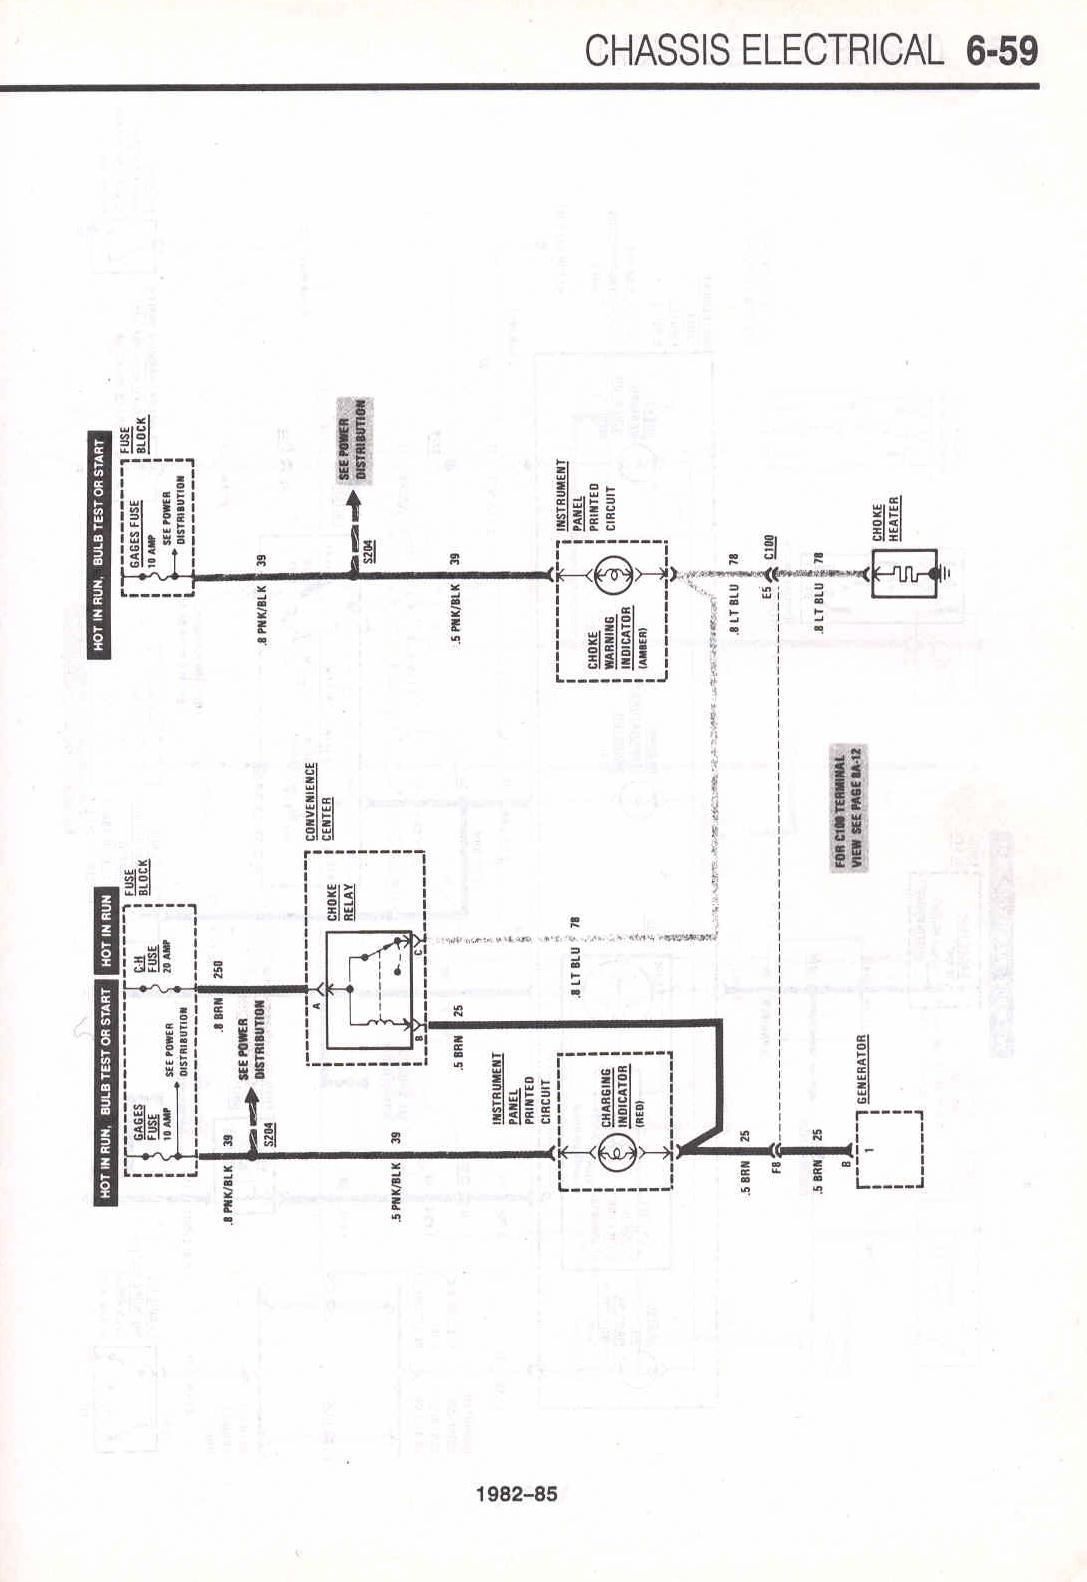 85 chevy silverado wiring diagram electrical diagrams 2 way switch truck wiper library